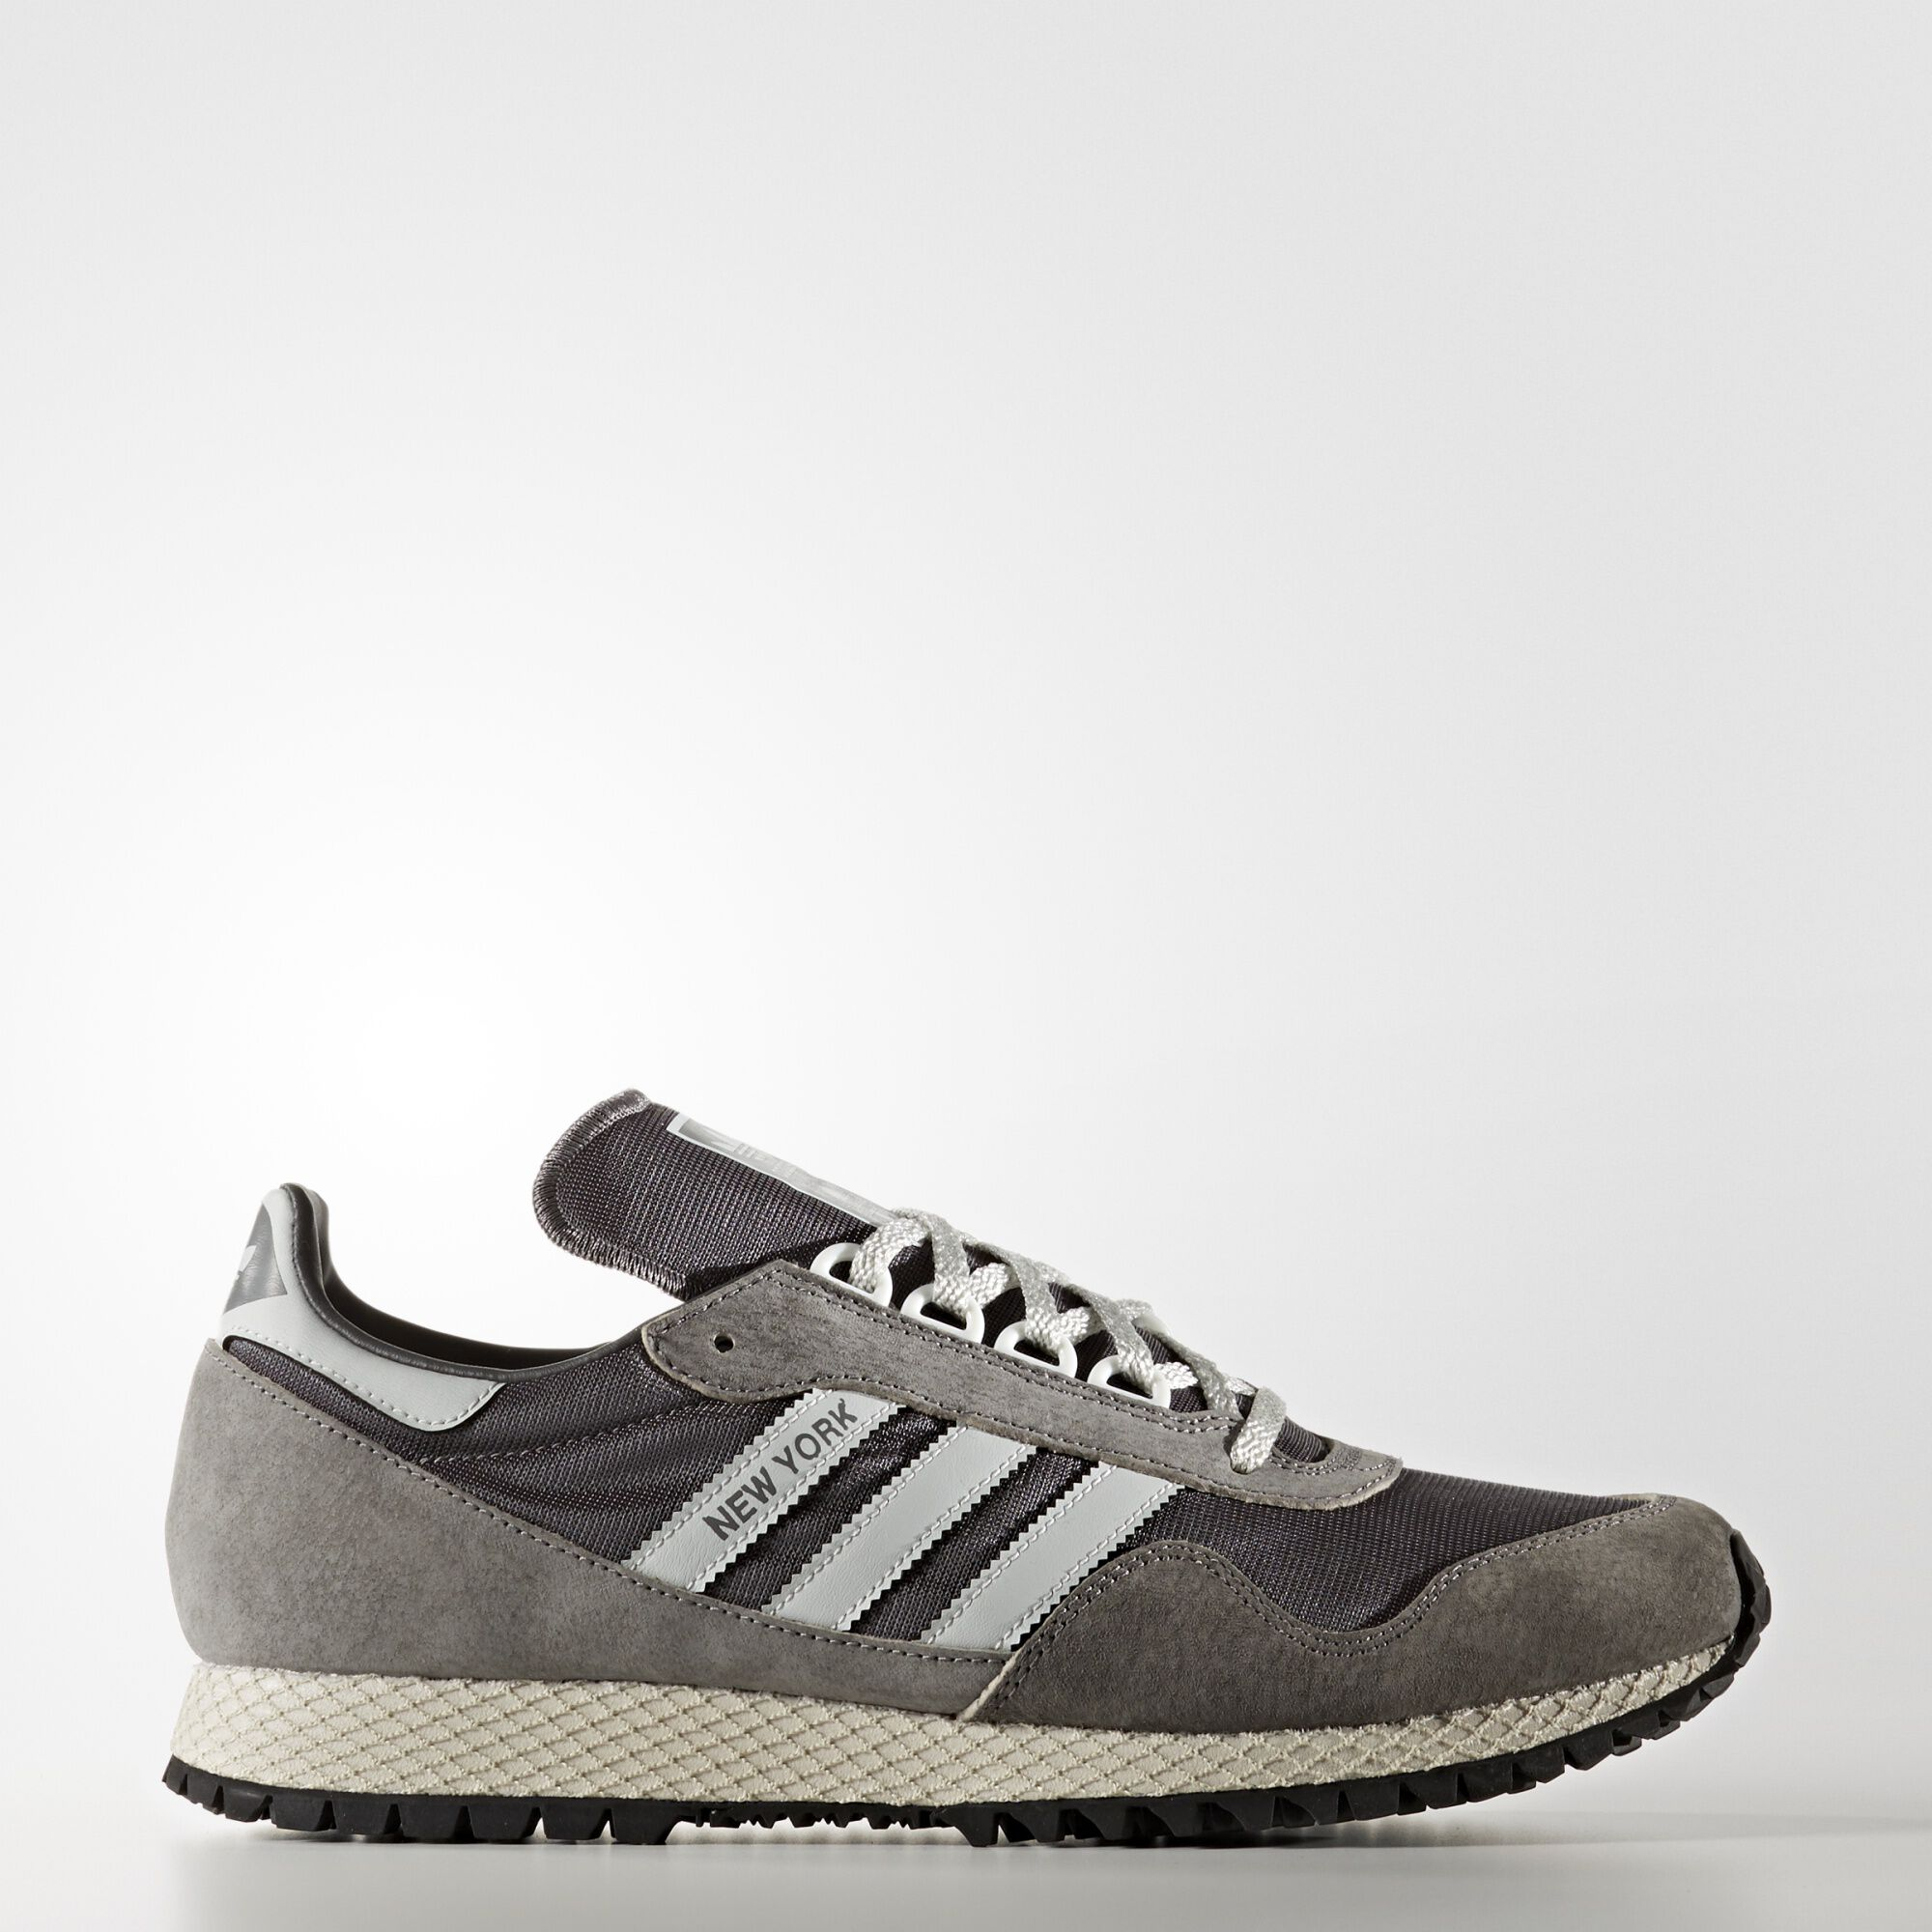 designer outlet gray sambas l7ca  adidas new shoes